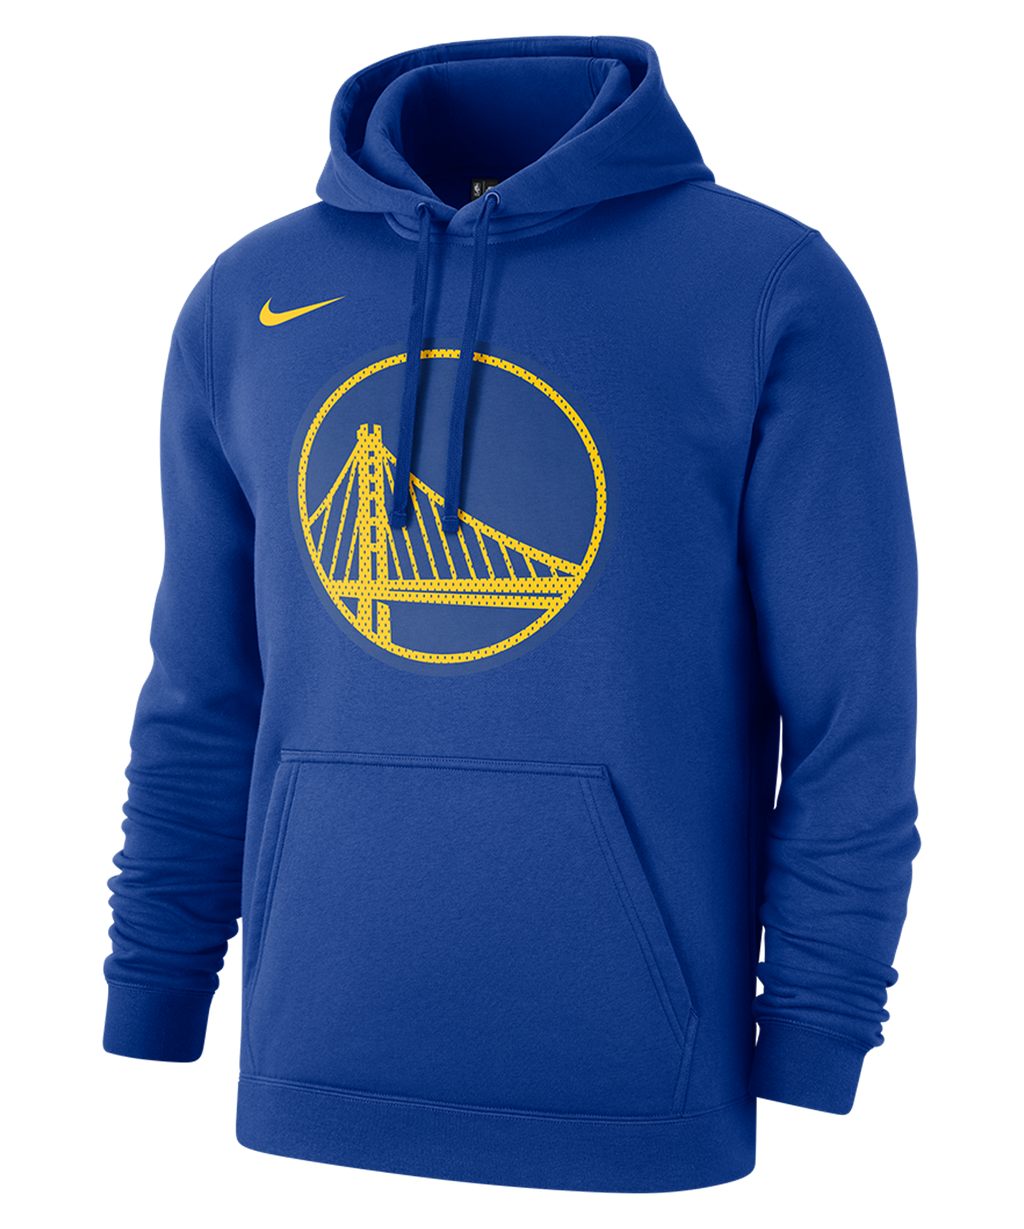 Golden State Warriors Nike Pullover Fleece Hoodie